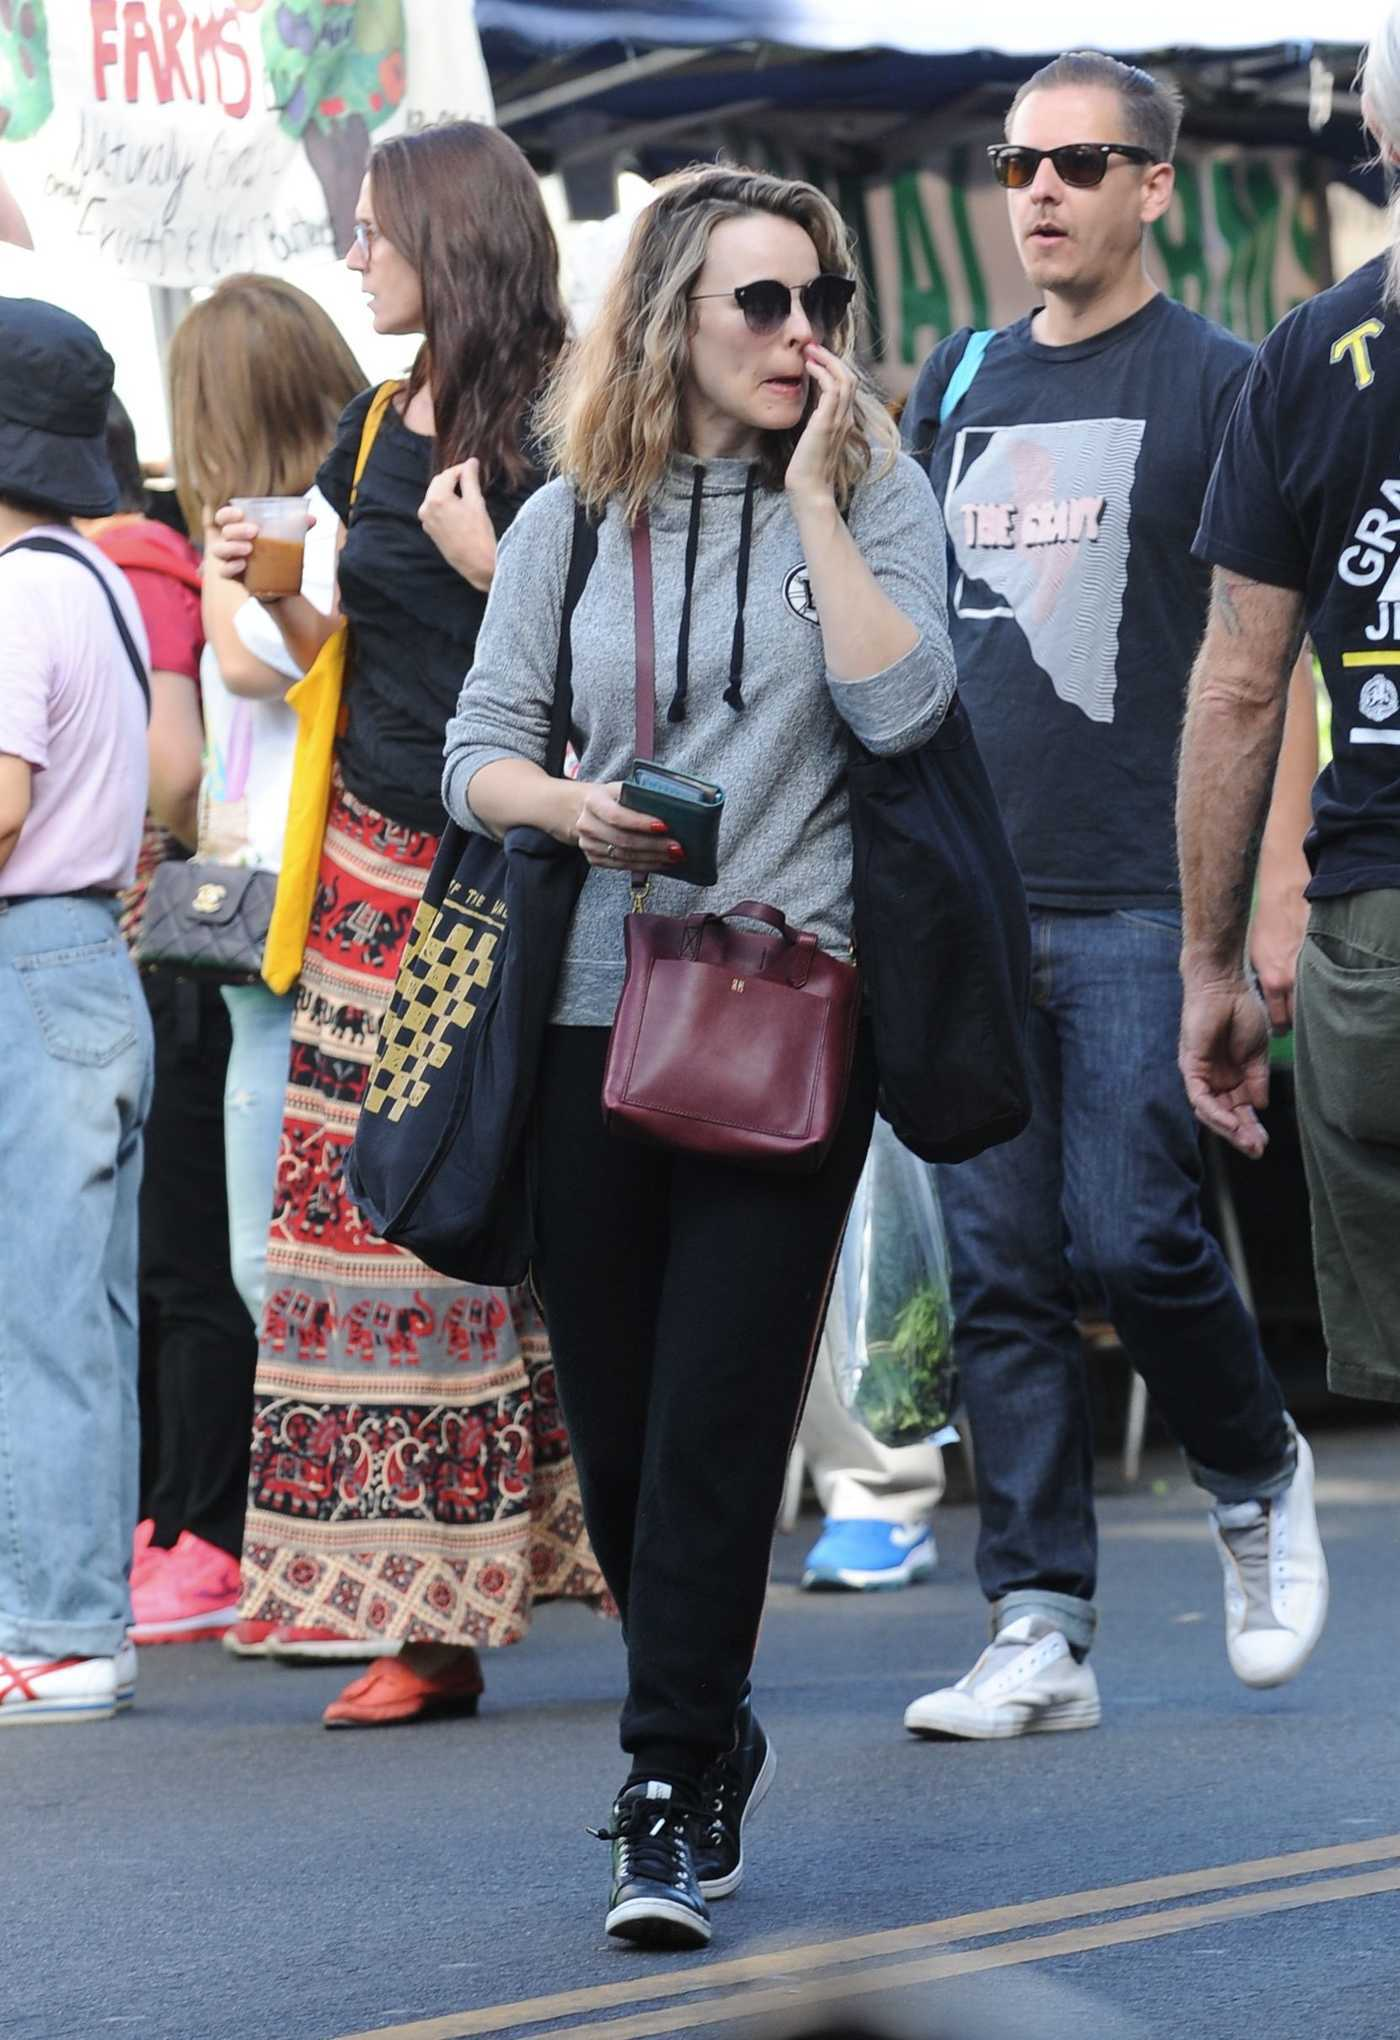 Rachel McAdams in a Gray Hoody Goes Shopping at the Farmer's Market in LA 10/08/2018